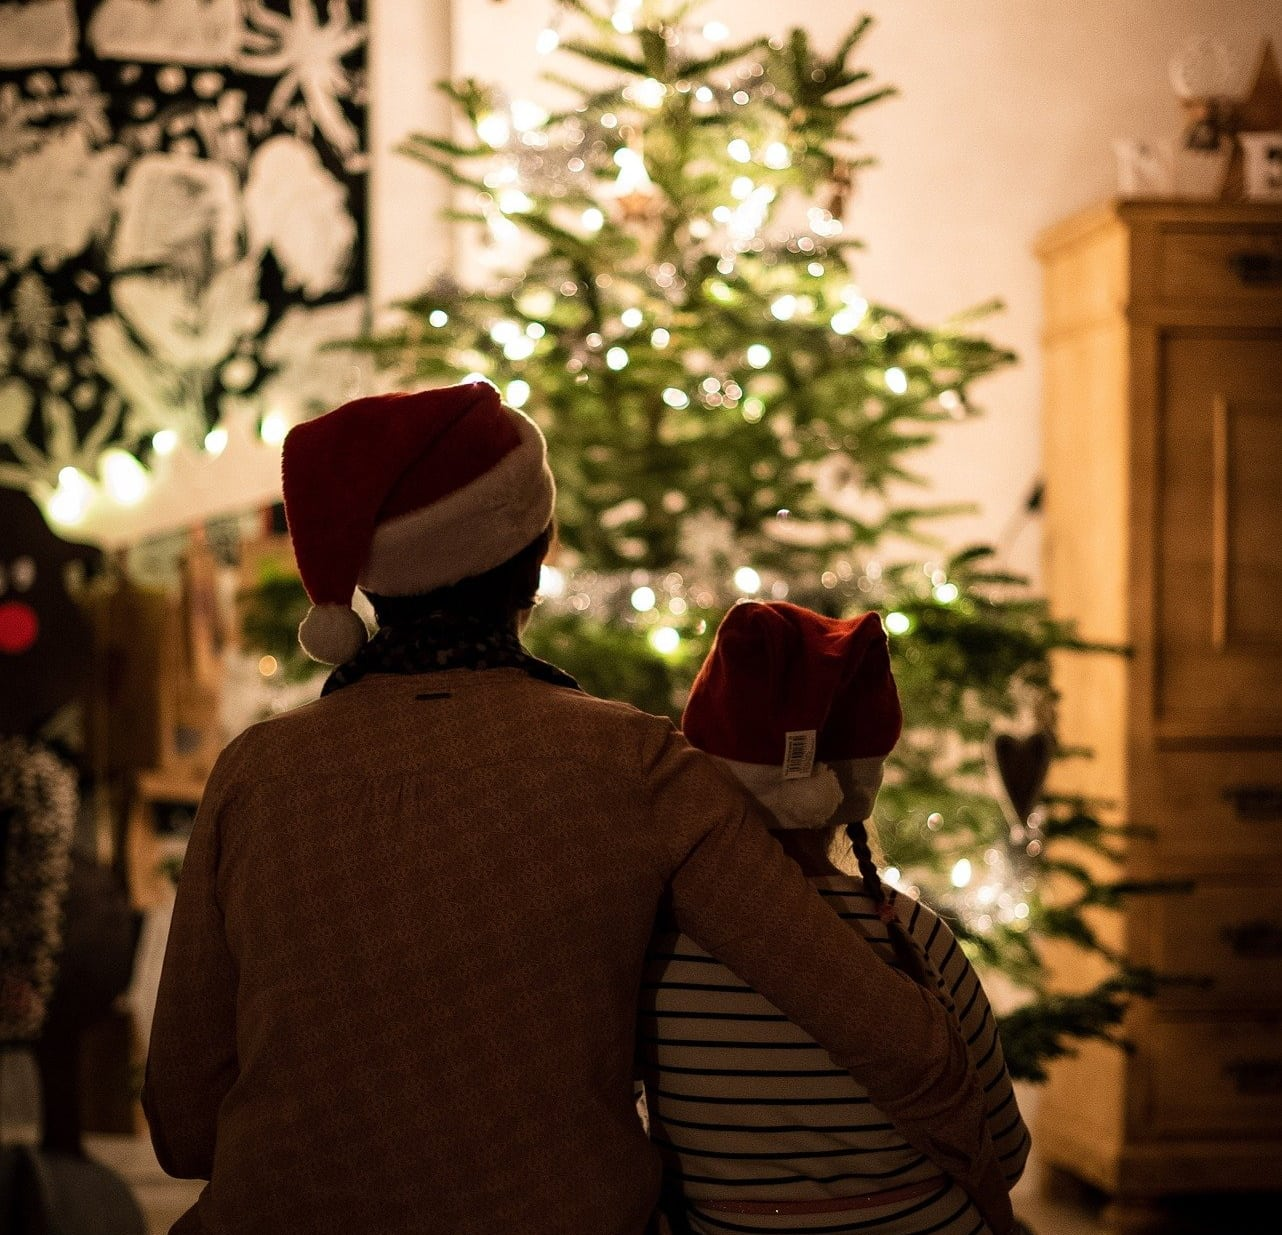 parent and child in front of Christmas tree